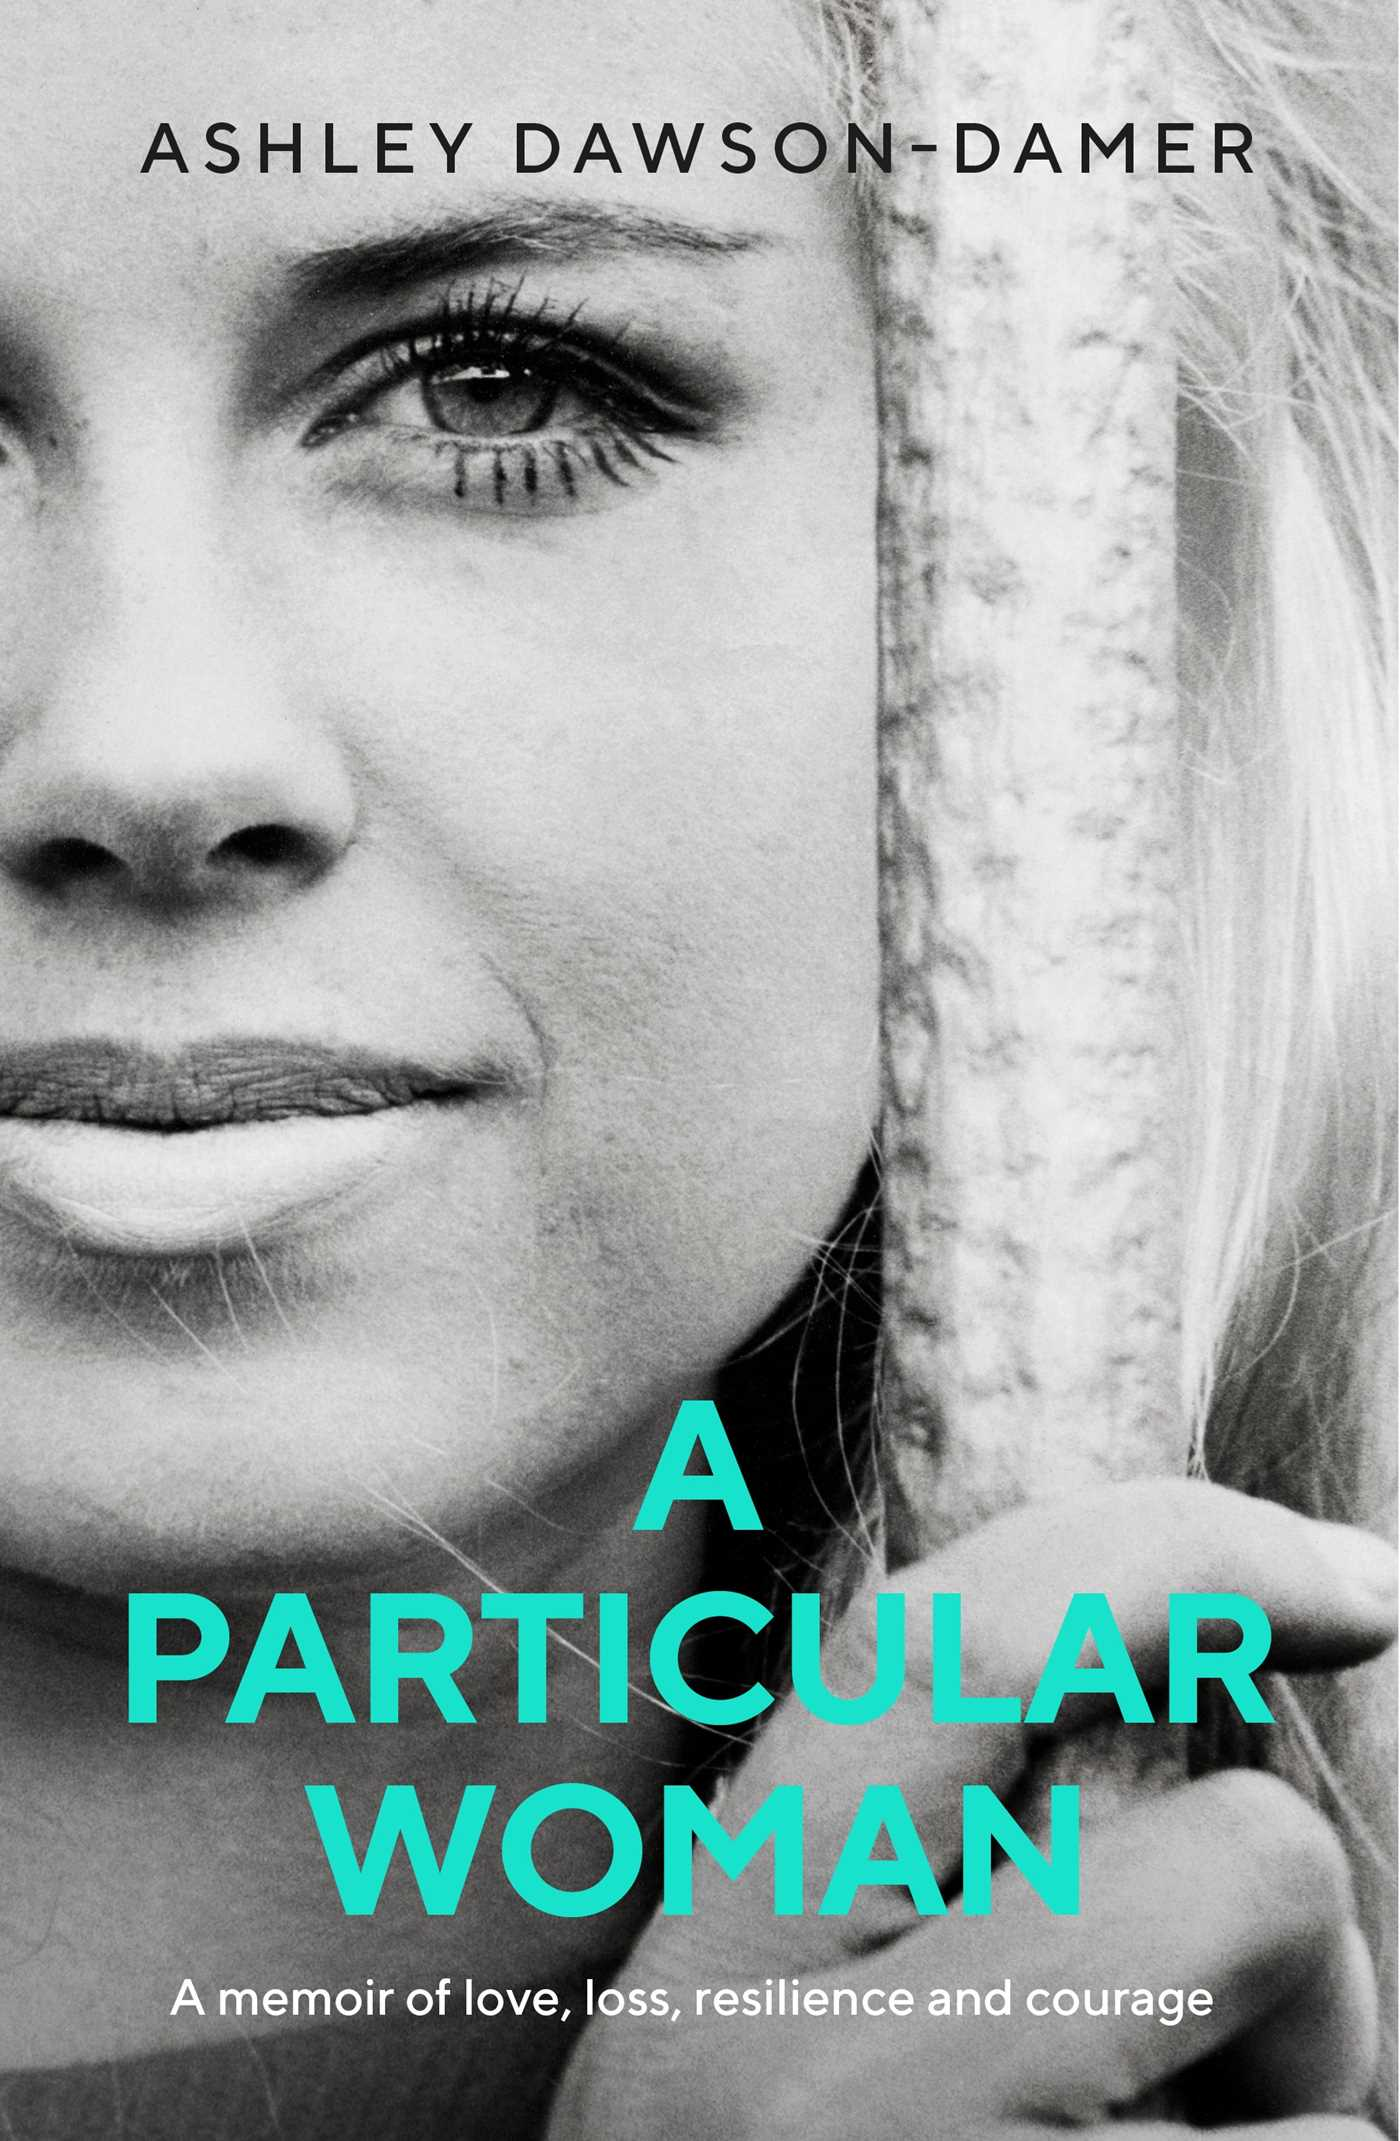 A Particular Woman: A memoir of Love, Loss, Resilience and Courage